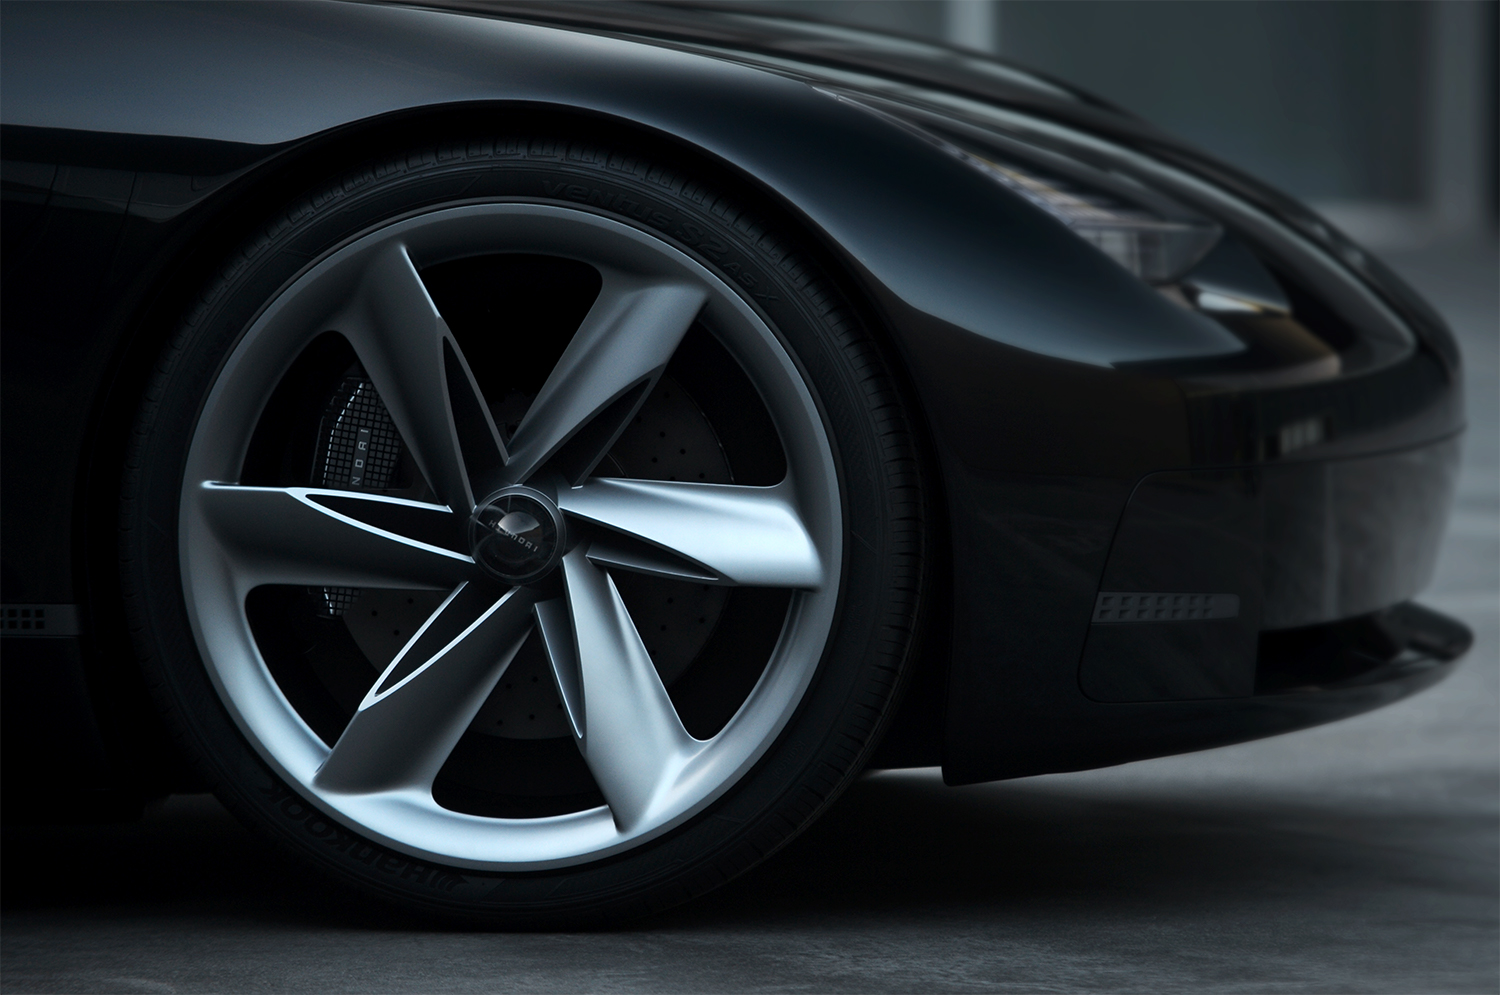 Hyundai Prophecy Concept EV front wheel closeup